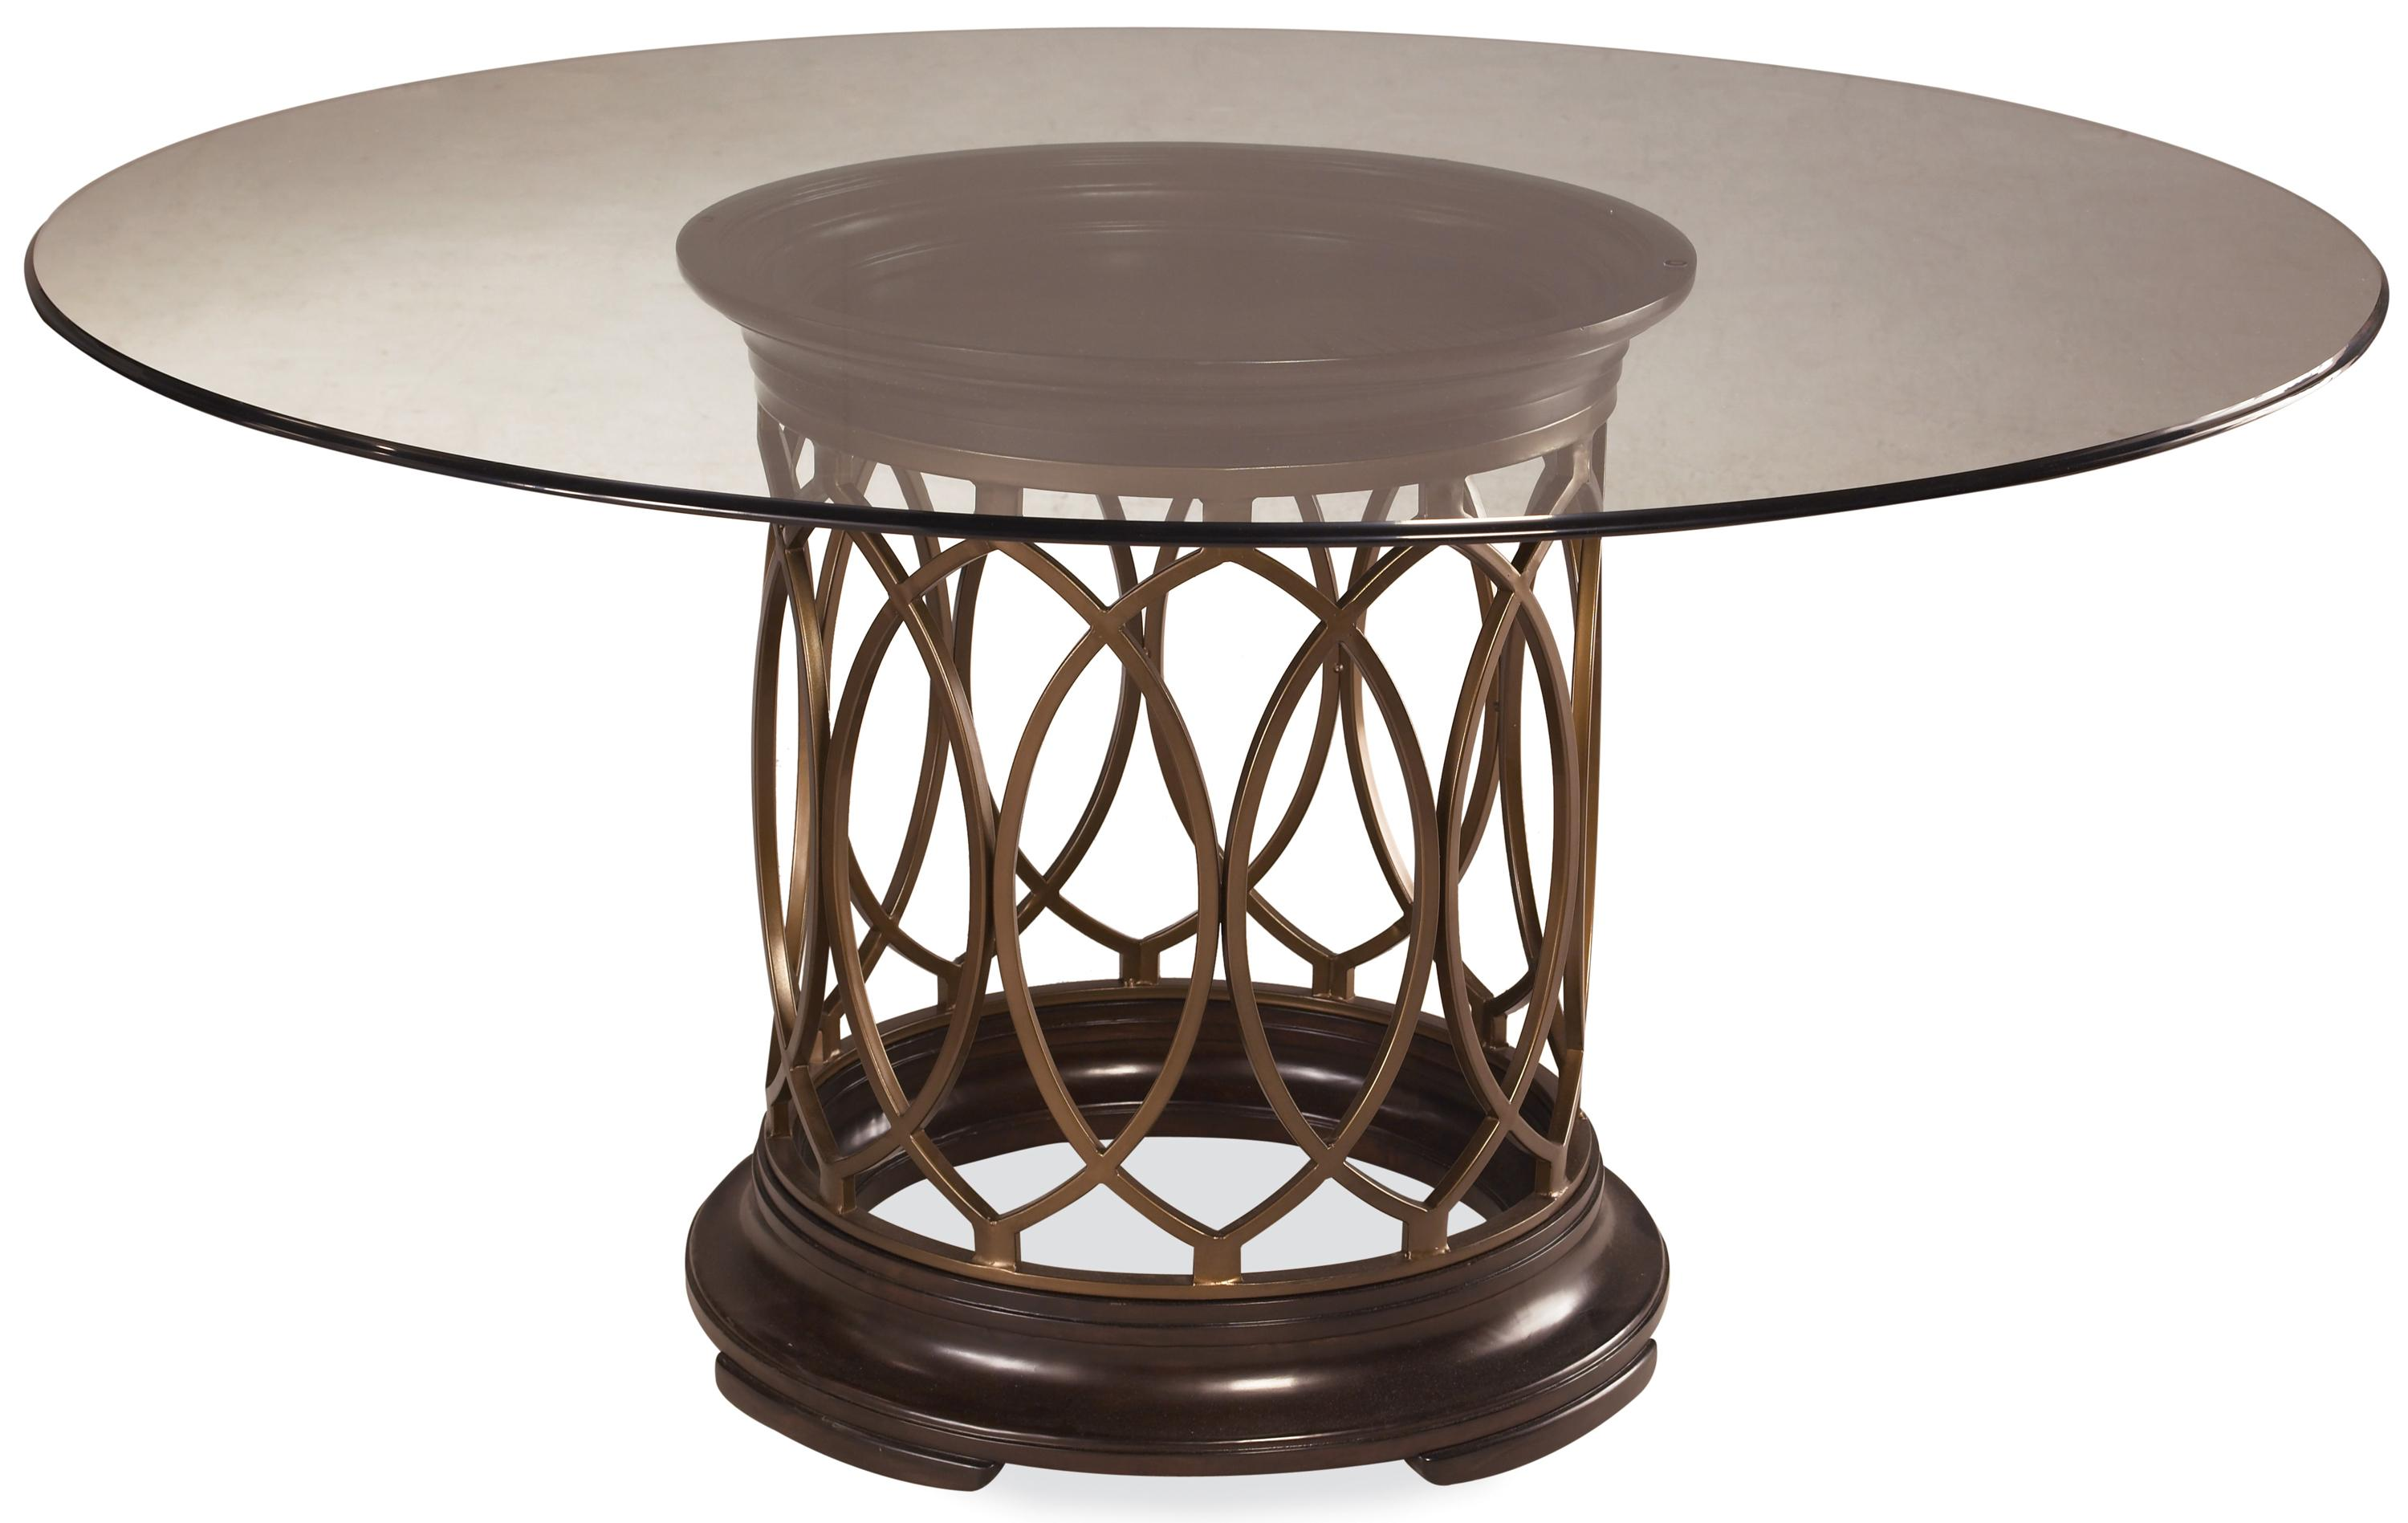 Belfort Signature Bolbrook Round Glass Top Dining Table - Item Number: 61224-2636TP+BS